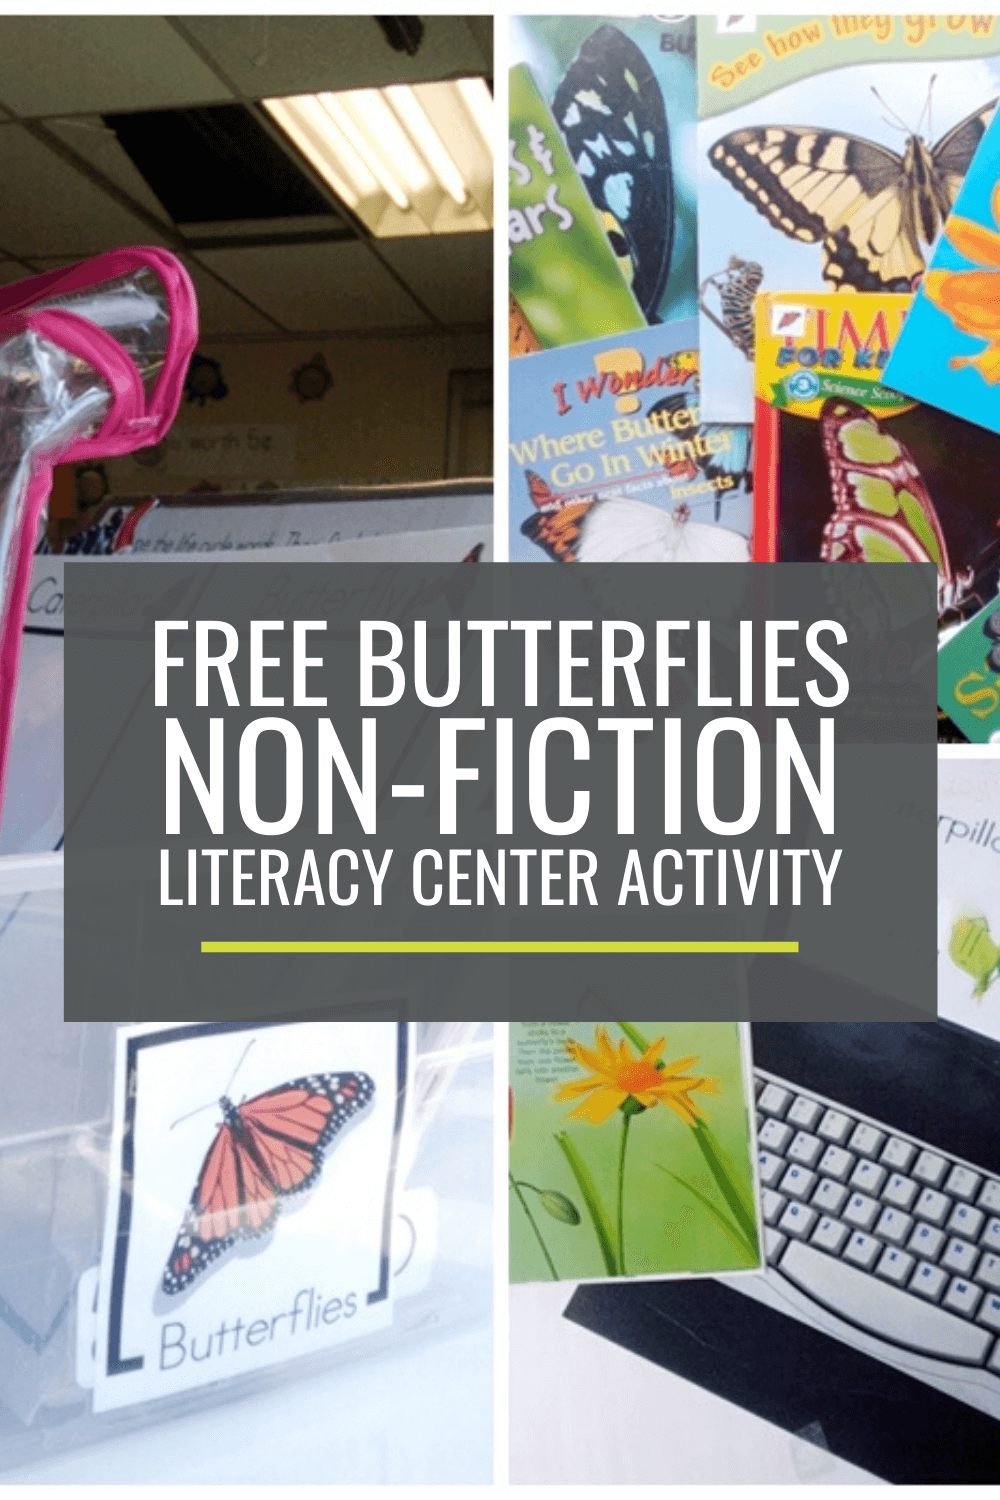 Butterflies Non-fiction Literacy Center Activity Set